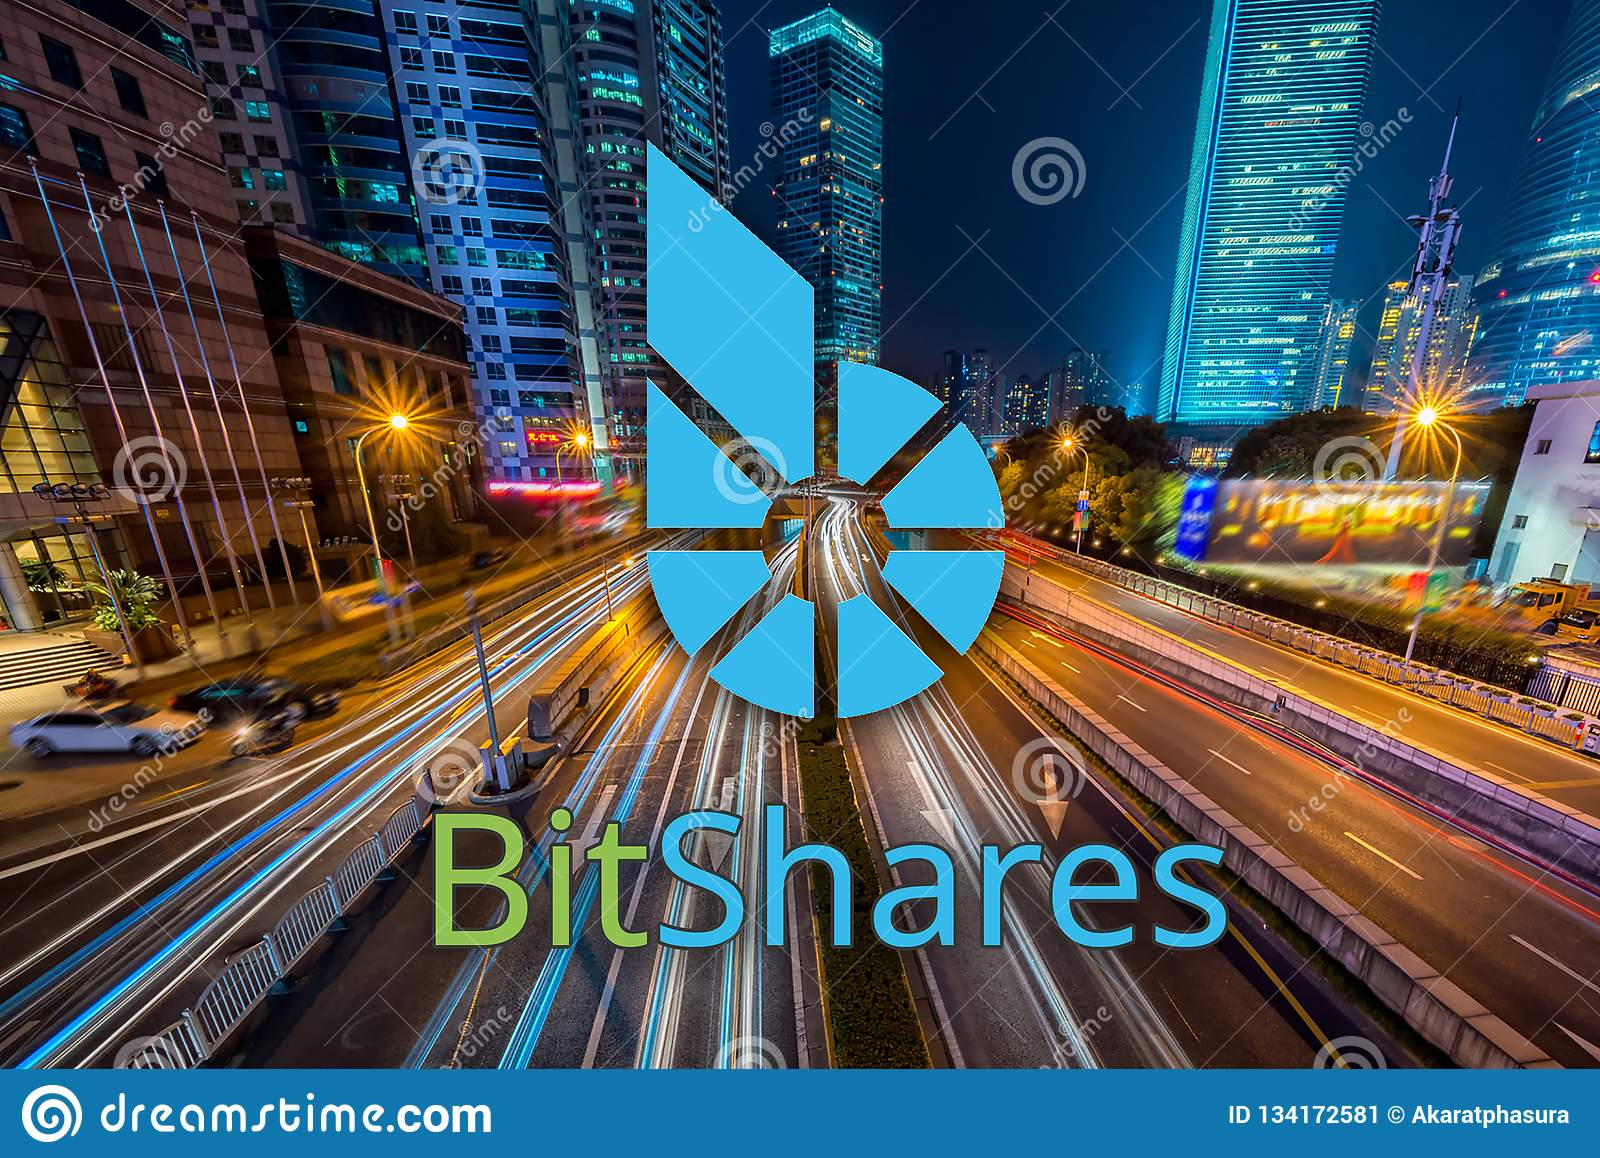 Concept of Bitshares moving fast on the road, a Cryptocurrency blockchain platform , Digital money